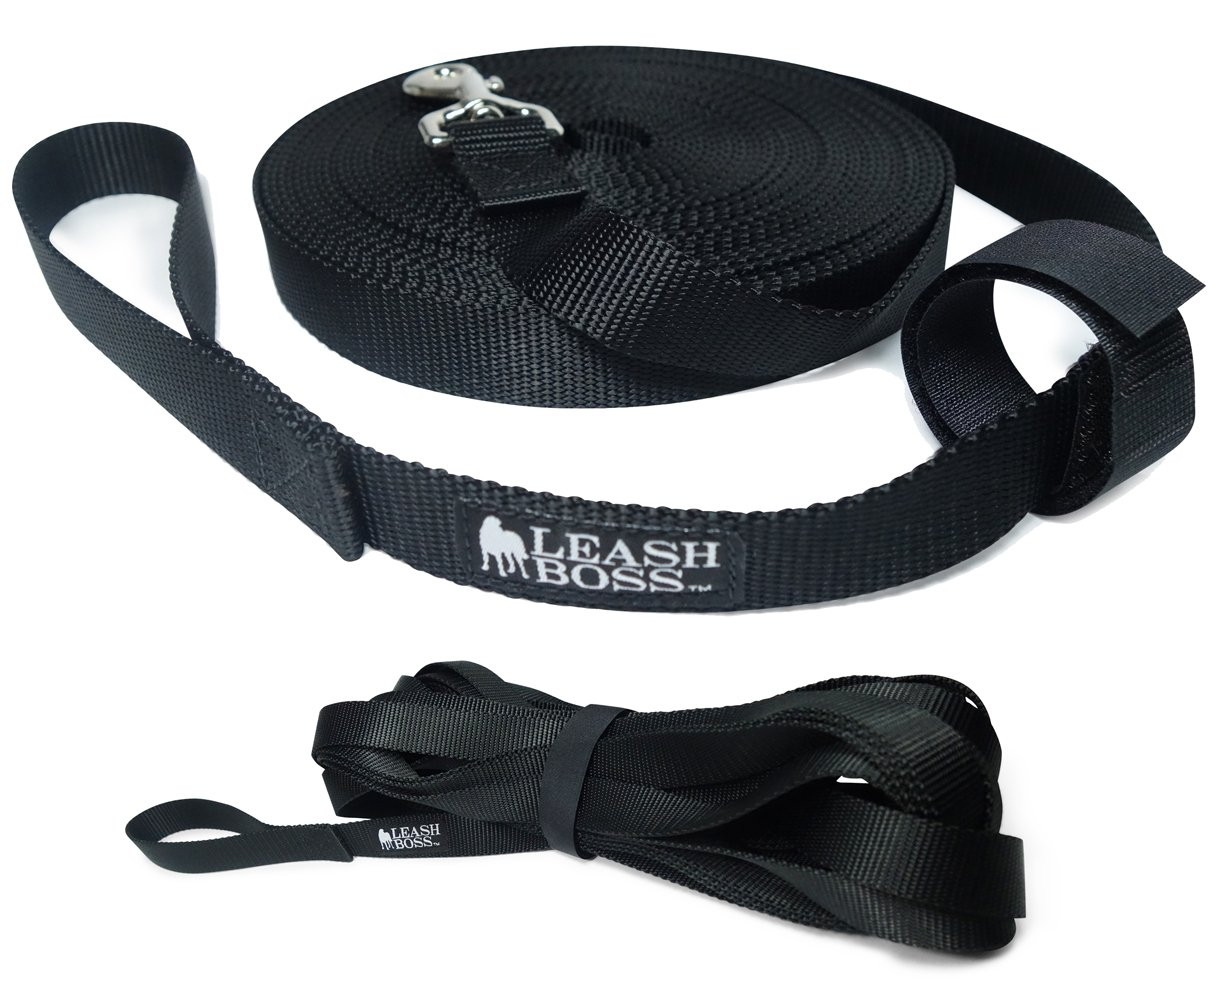 Leashboss Long Trainer - 20 Foot Lead - 1 Inch Nylon Long Dog Training Leash with Storage Strap - K9 Recall - for Large Dogs (20 Ft, 1 in, Black)